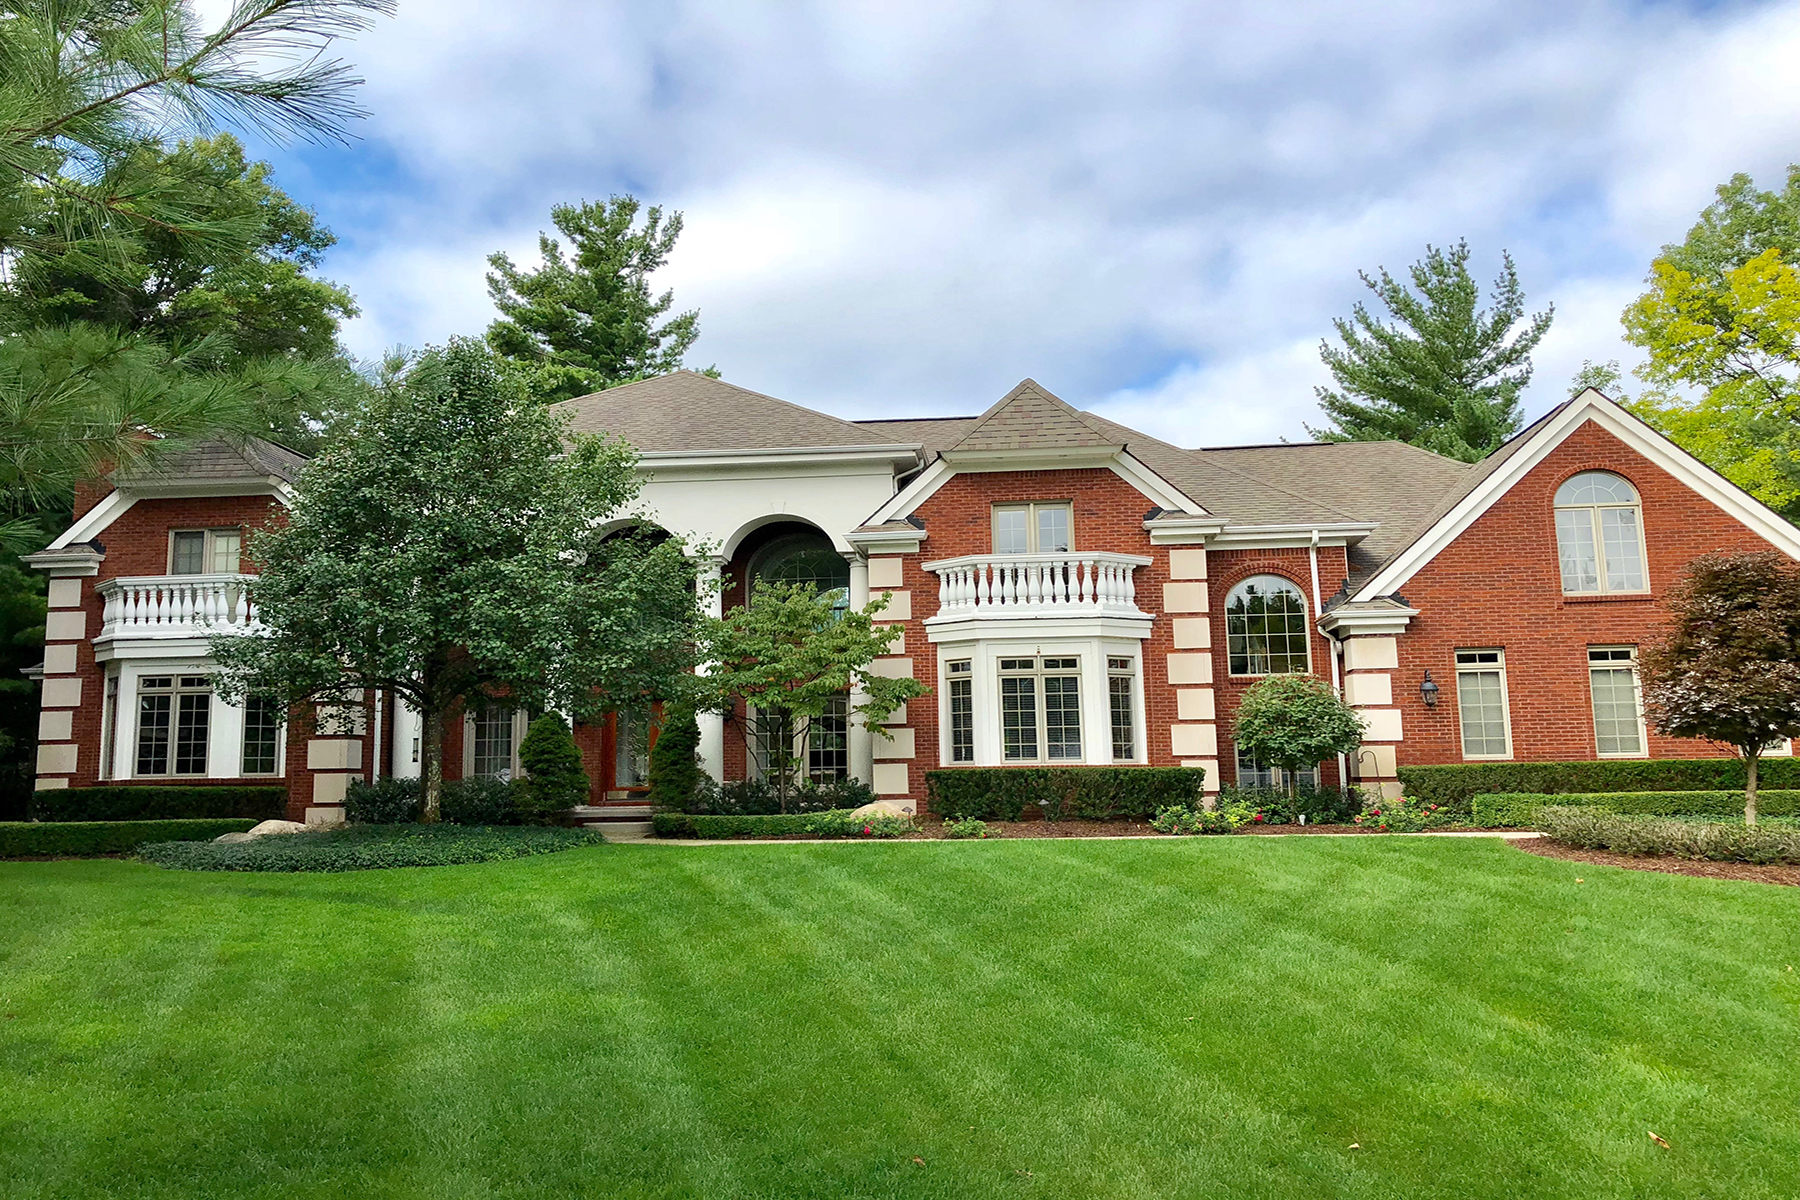 Single Family Homes for Sale at Oxford Township 1822 Arrowhead Trail Oxford, Michigan 48371 United States